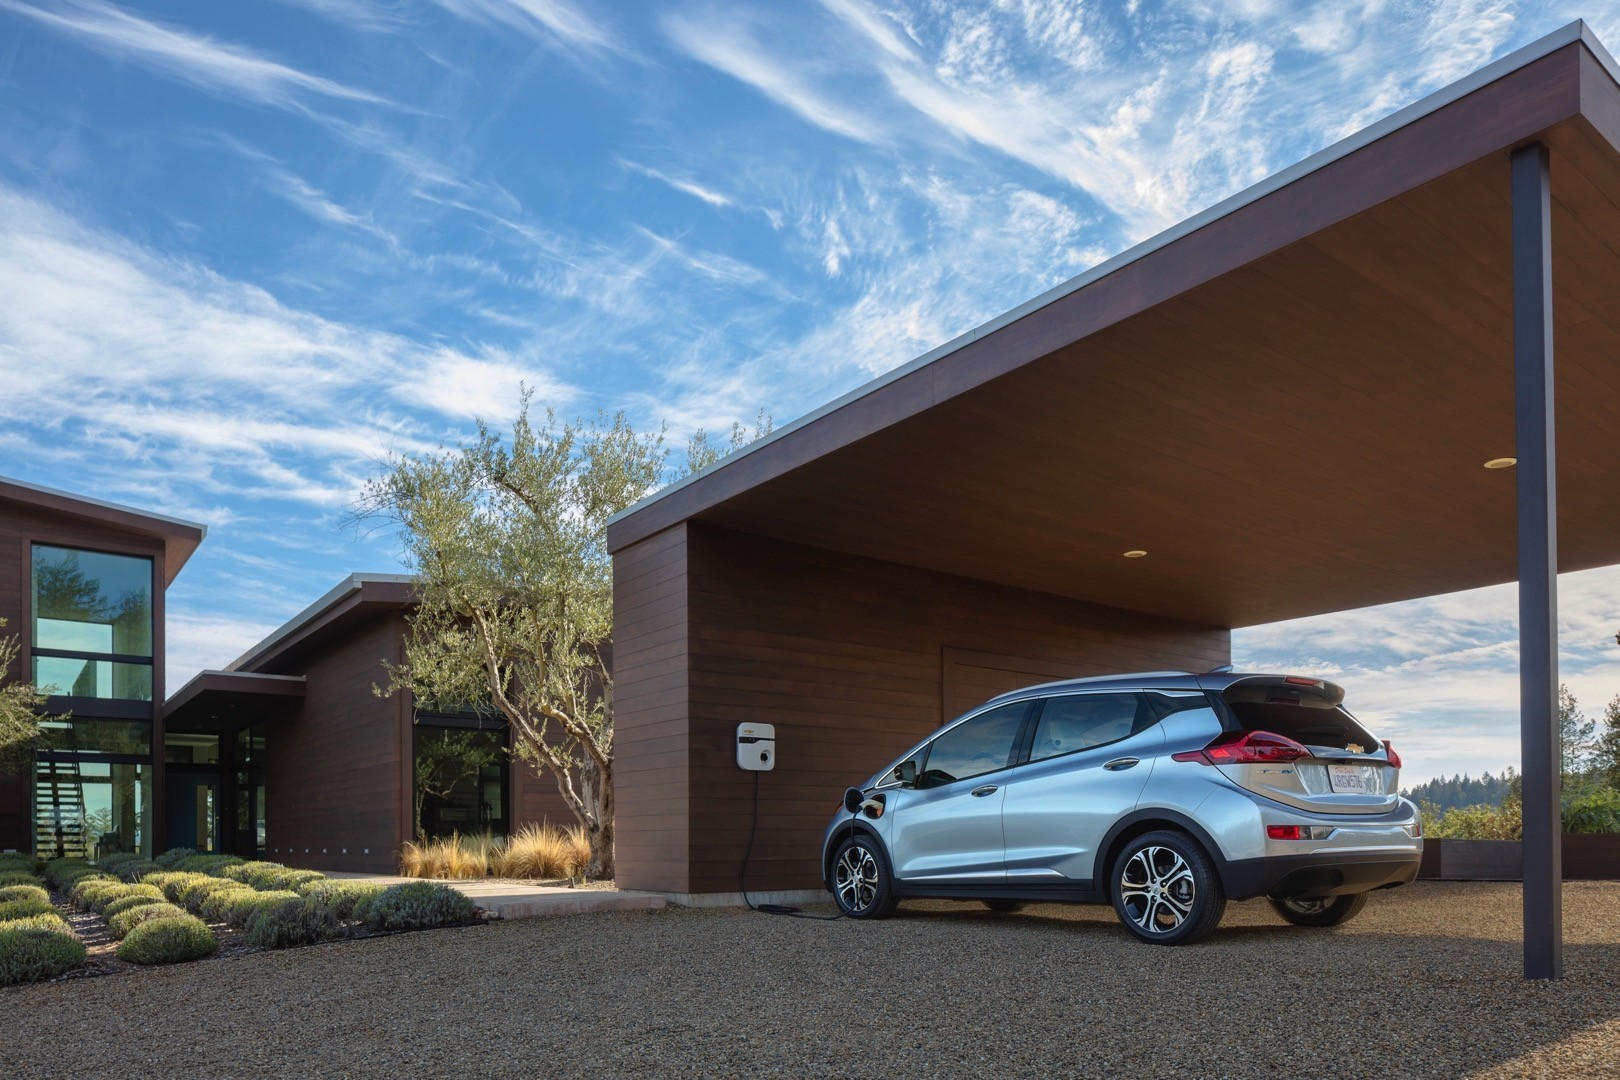 2017 Chevrolet Bolt Offers 238 Miles of Range, Opel & Vauxhall Ampera ...